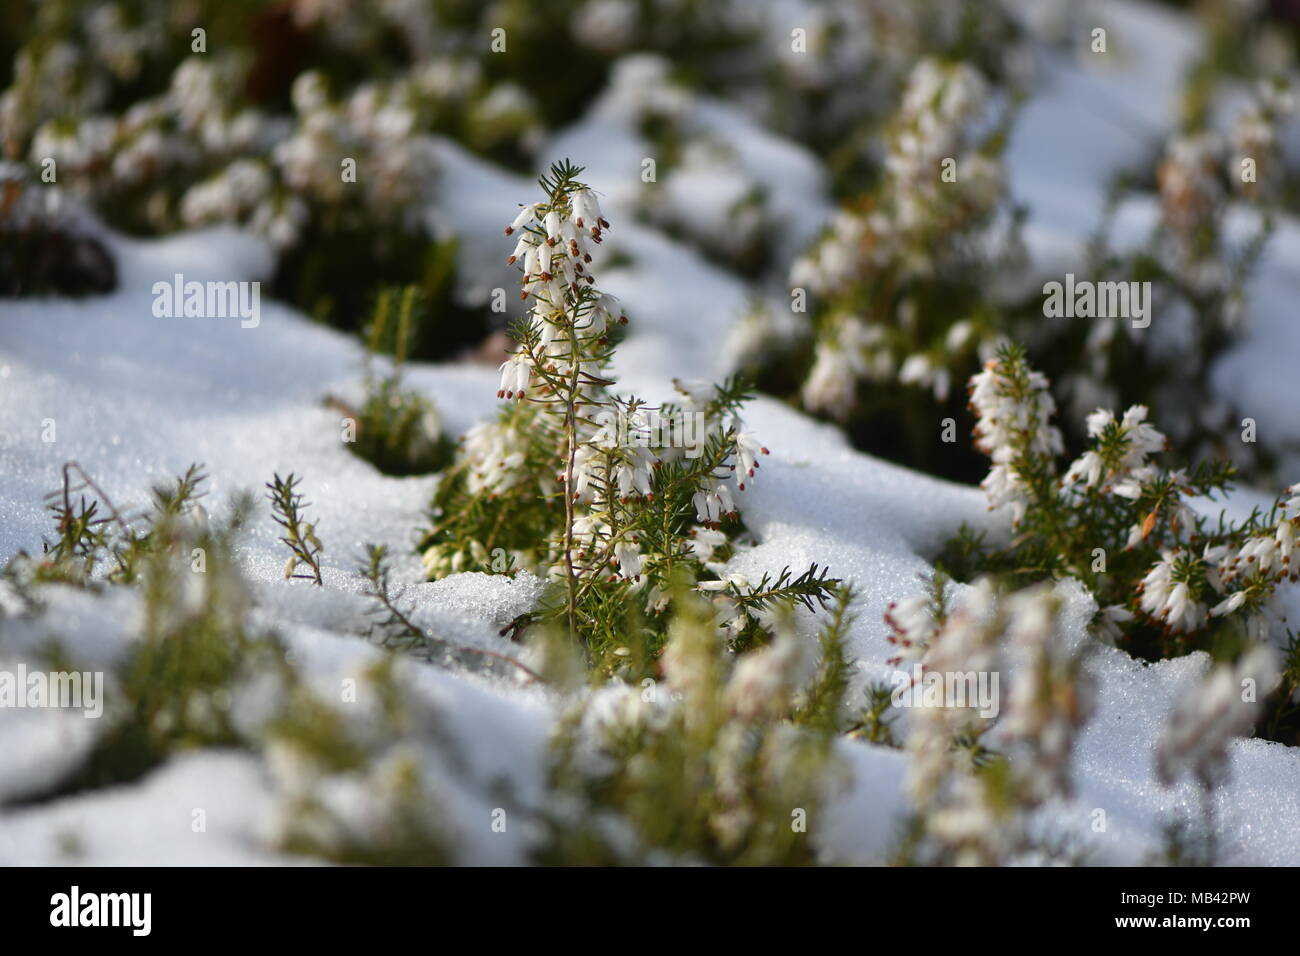 White heather (Erica sp.) flowering in the snow. White flowers of a common heather plant in the family Ericaceae - Stock Image